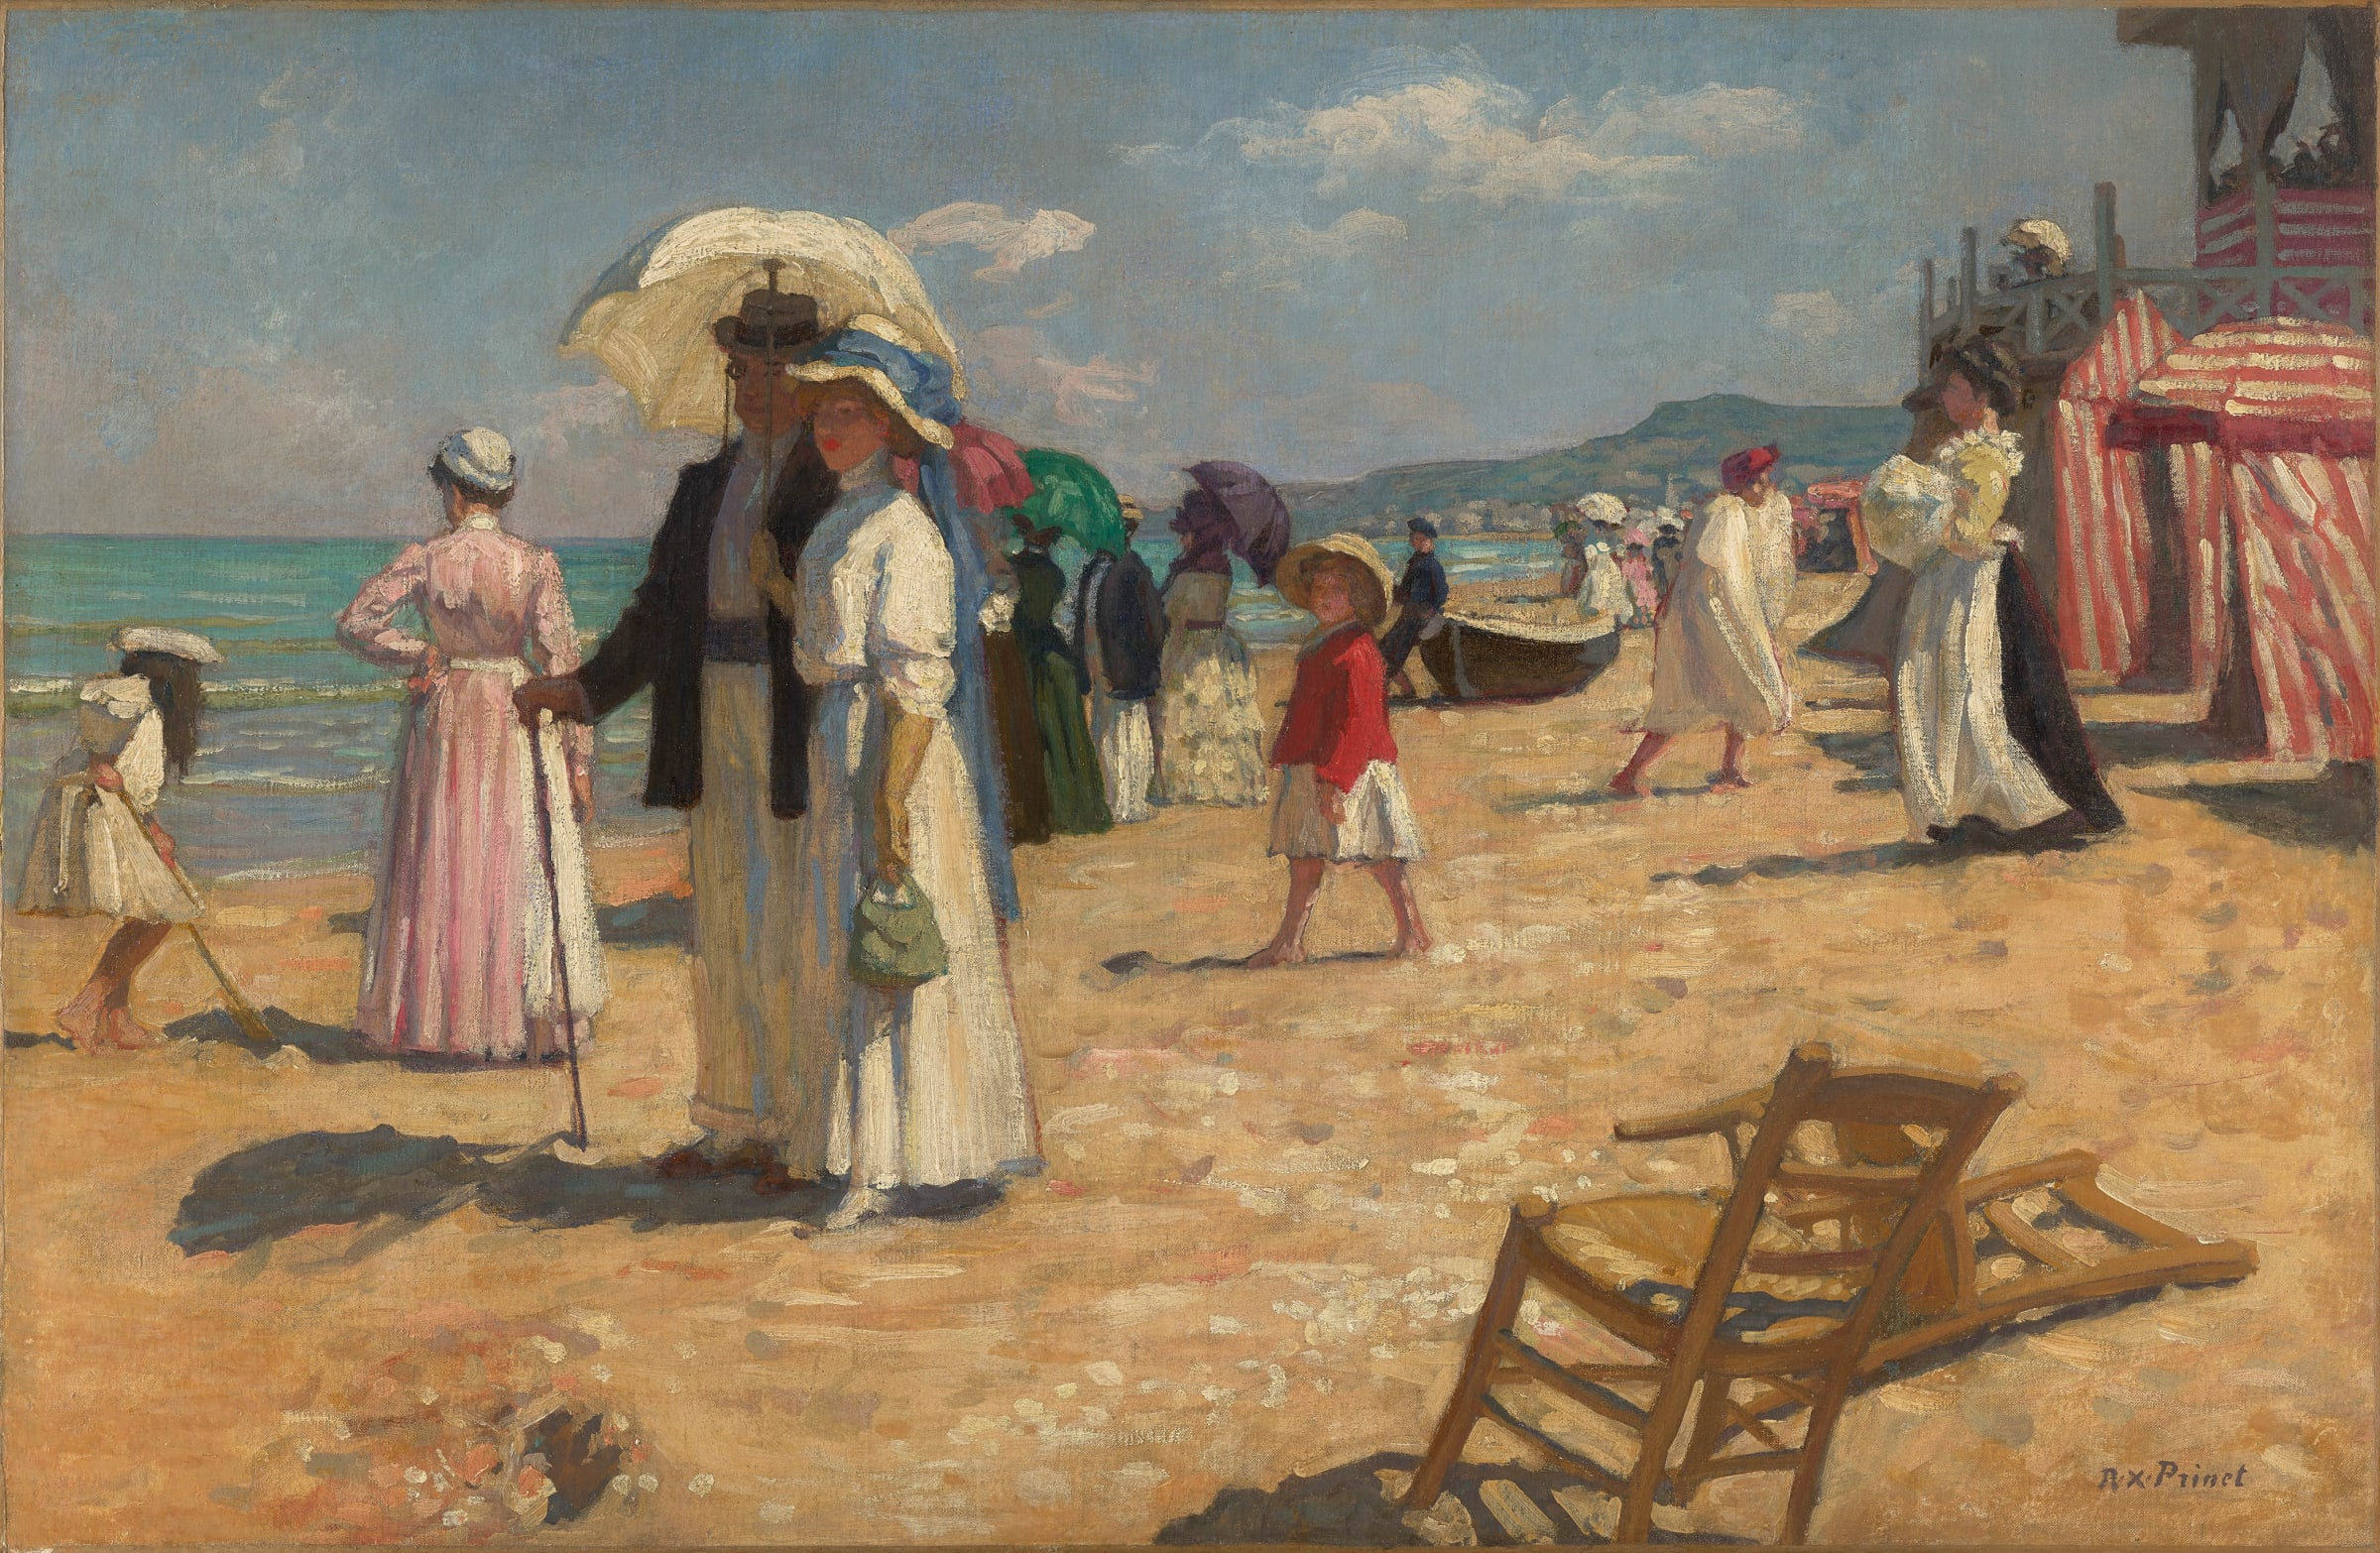 """<span class=""""link fancybox-details-link""""><a href=""""/artists/92-rene-francois-xavier-prinet/works/9469-rene-francois-xavier-prinet-la-plage-cabourg-1908/"""">View Detail Page</a></span><div class=""""artist""""><span class=""""artist""""><strong>René-François Xavier Prinet</strong></span></div><div class=""""title""""><em>La Plage, Cabourg</em>, 1908</div><div class=""""signed_and_dated"""">Signed lower right</div><div class=""""medium"""">Oil on canvas</div><div class=""""dimensions"""">60 x 93 cm<br /> 23 5/8 x 36 5/8 inches</div>"""